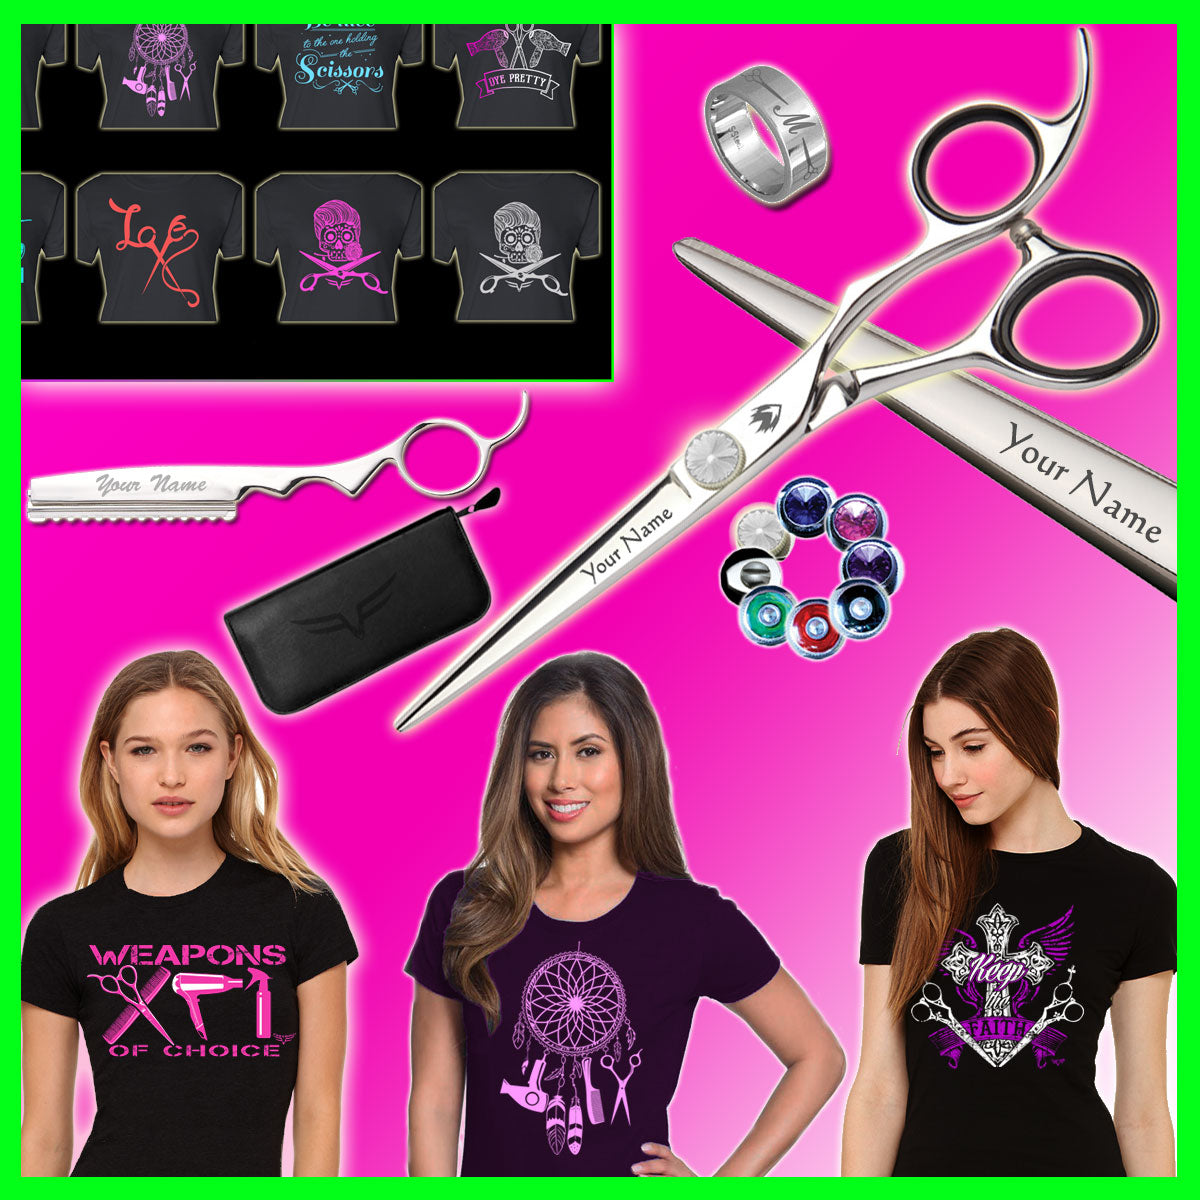 Freebird All Star For Stylists + Leather Case. Built Your Own Custom Shear Set For $89.00. While Supply Lasts.